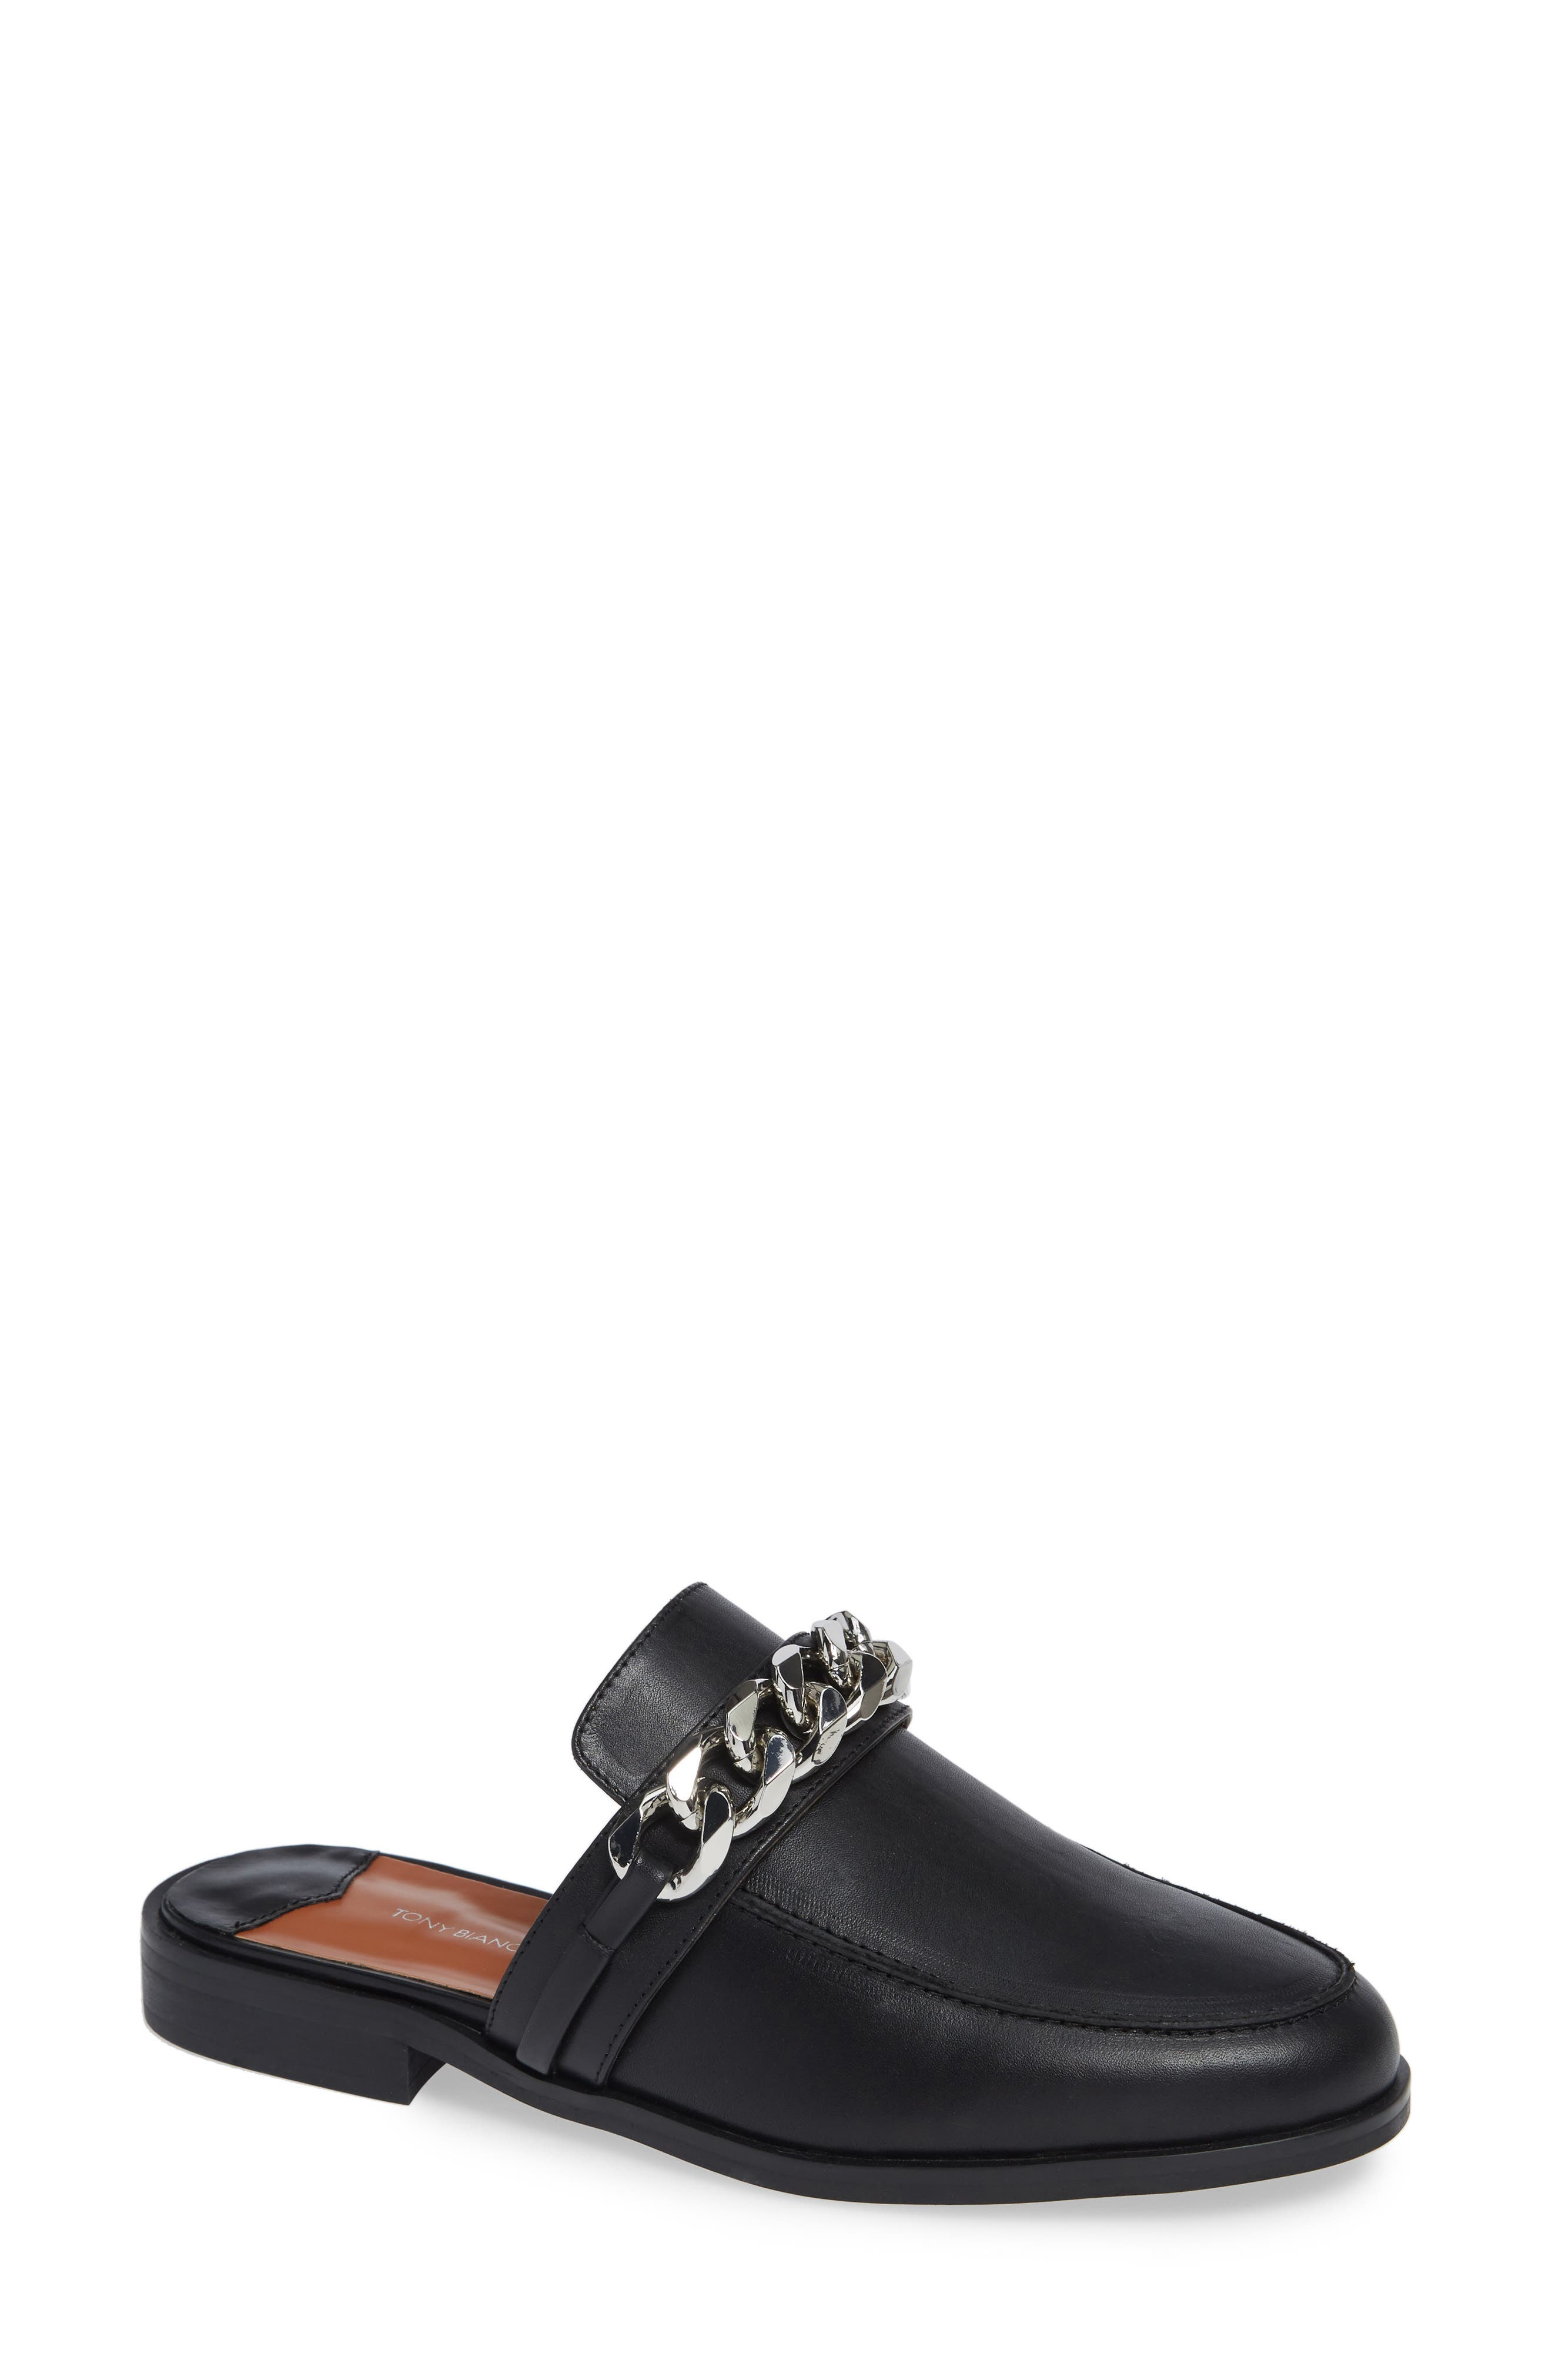 TONY BIANCO Dion Mule, Main, color, BLACK SMOOTH LEATHER